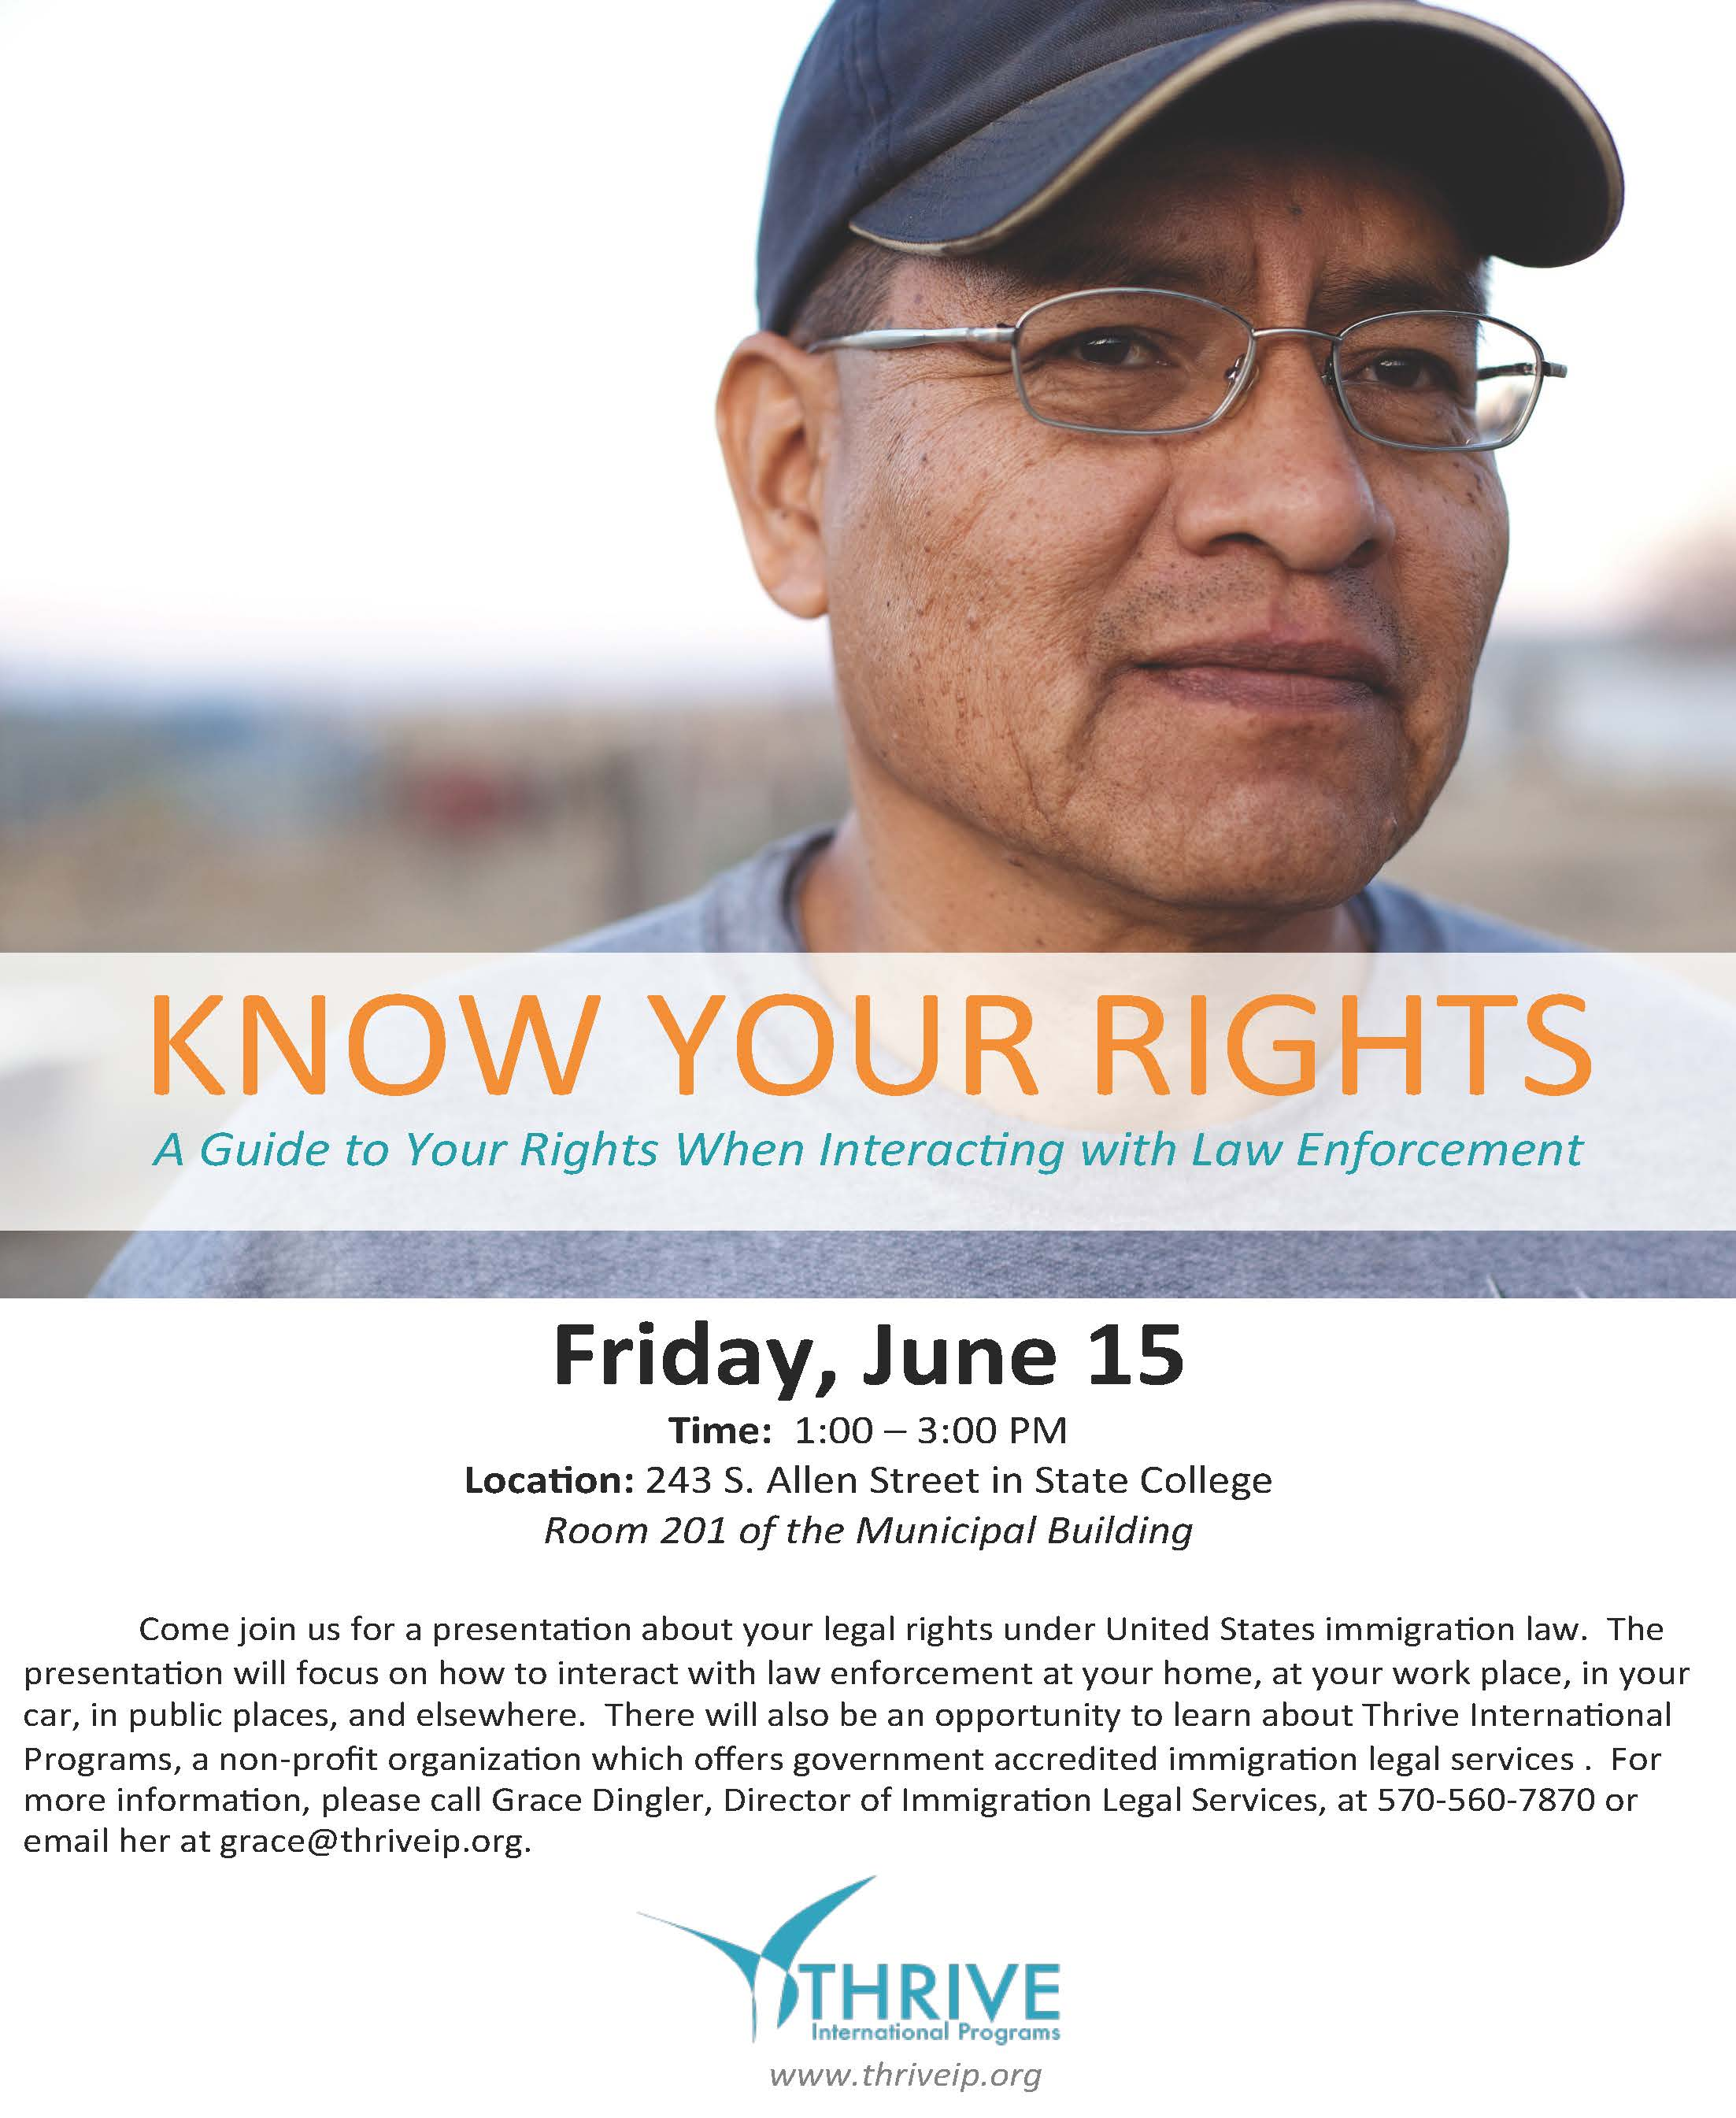 June 15 Thrive_KnowYourRights_flyer